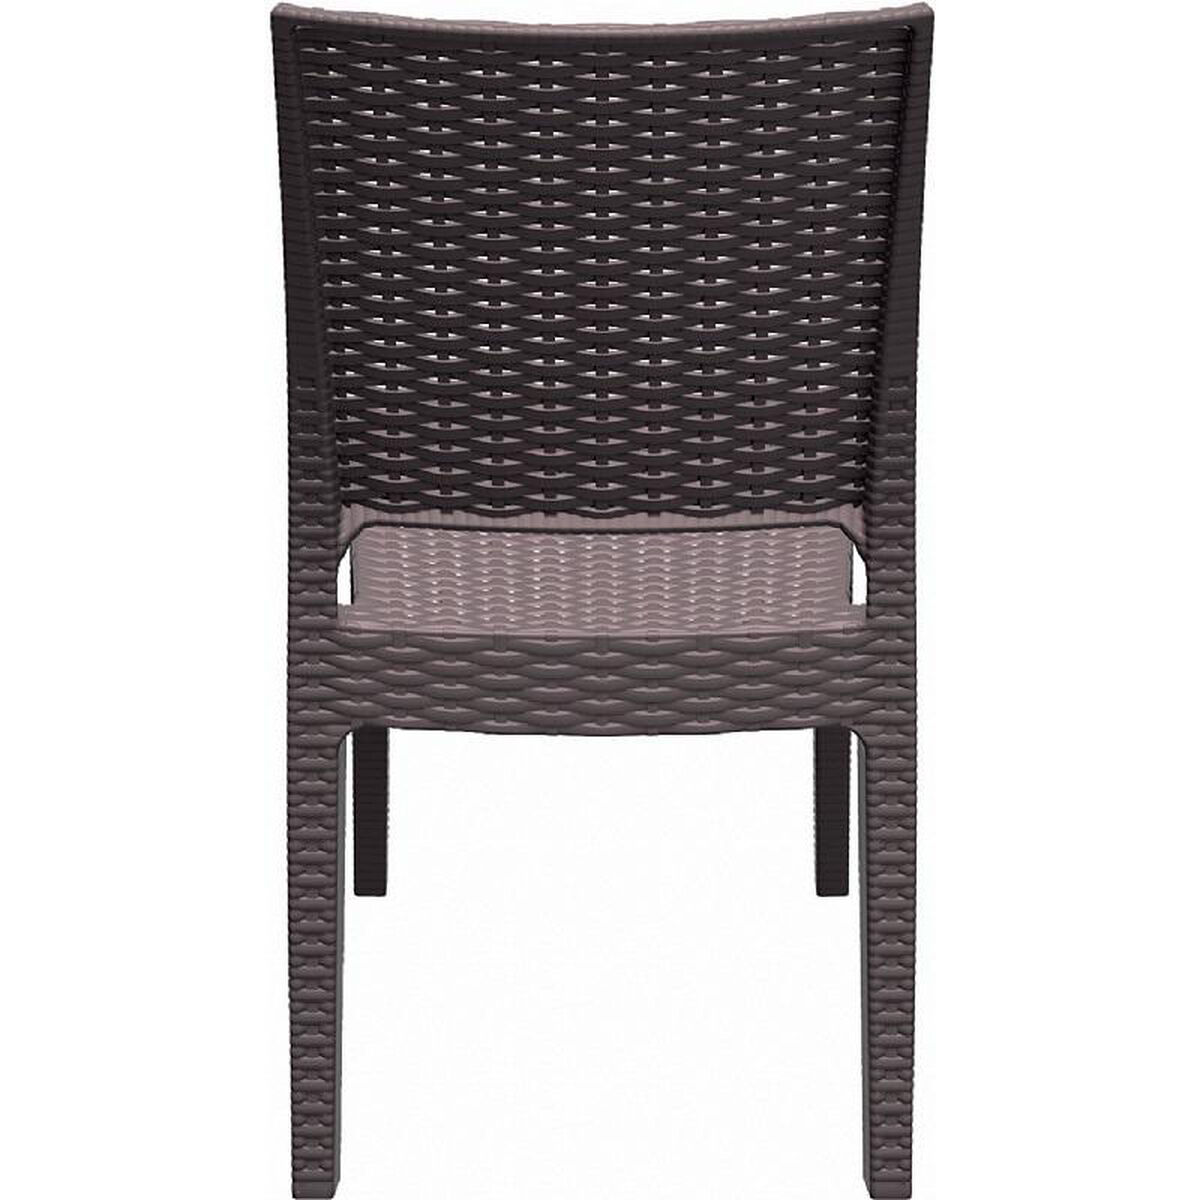 Astounding Florida Outdoor Wickerlook Resin Stackable Dining Chair Brown Ncnpc Chair Design For Home Ncnpcorg